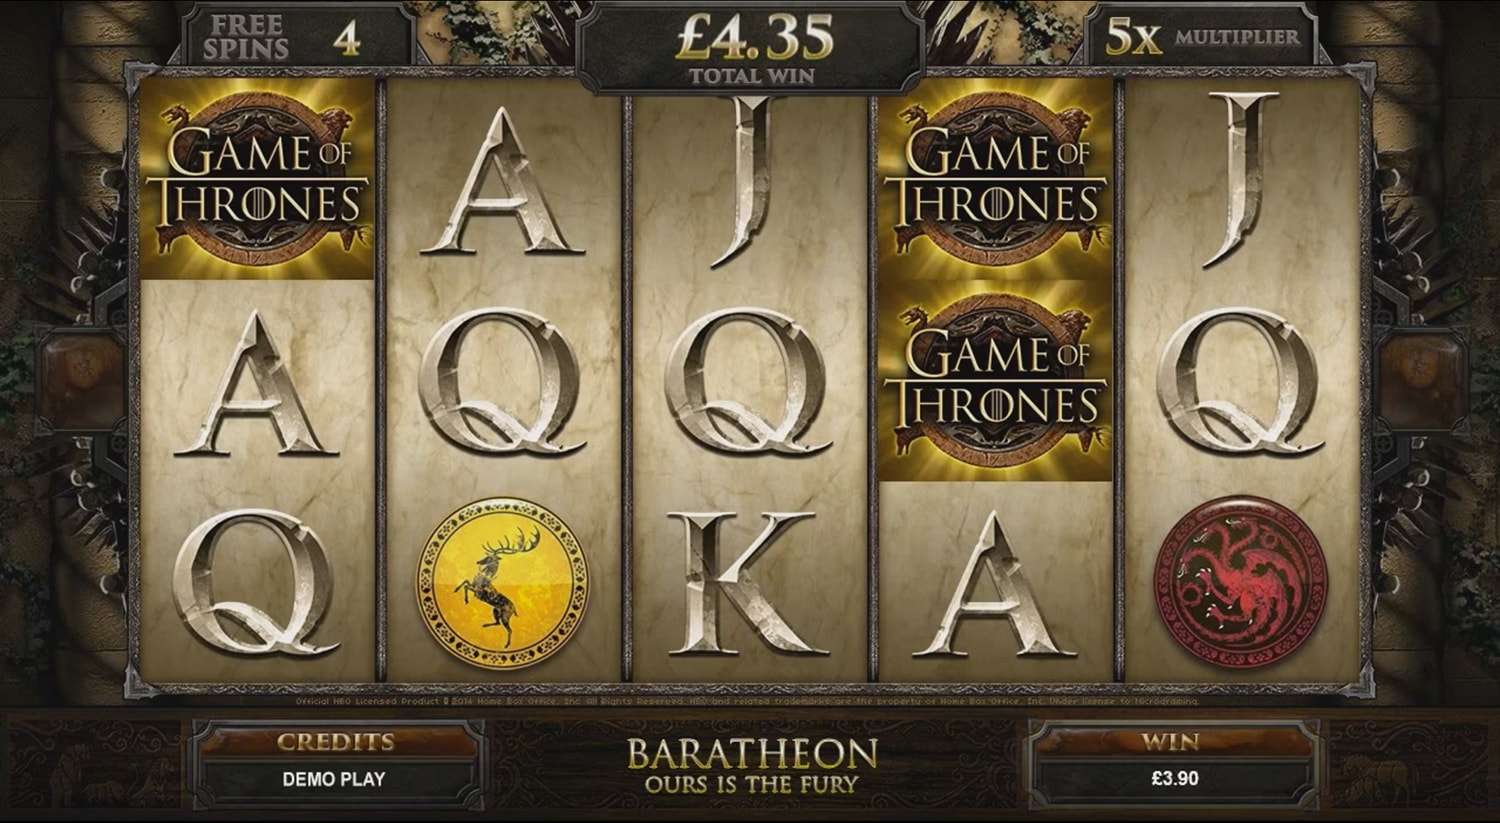 Microgaming: Game of Thrones